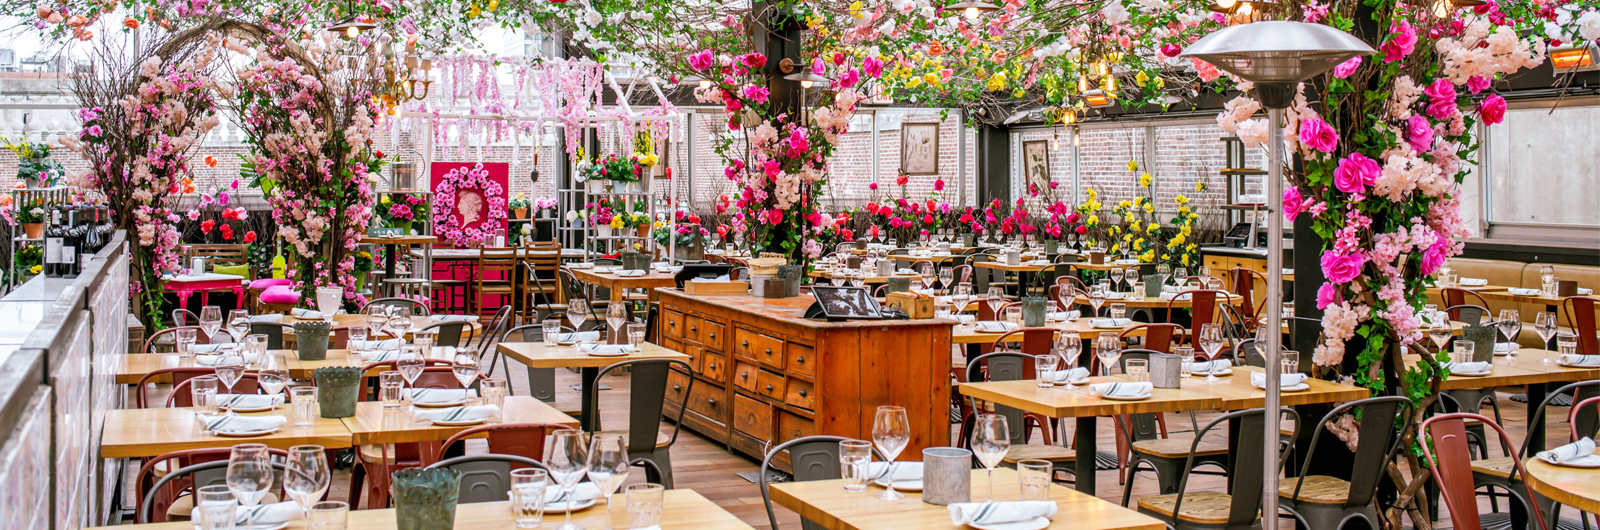 A Springtime Restaurant for Spritz Cocktails and Rustic Italian Charm